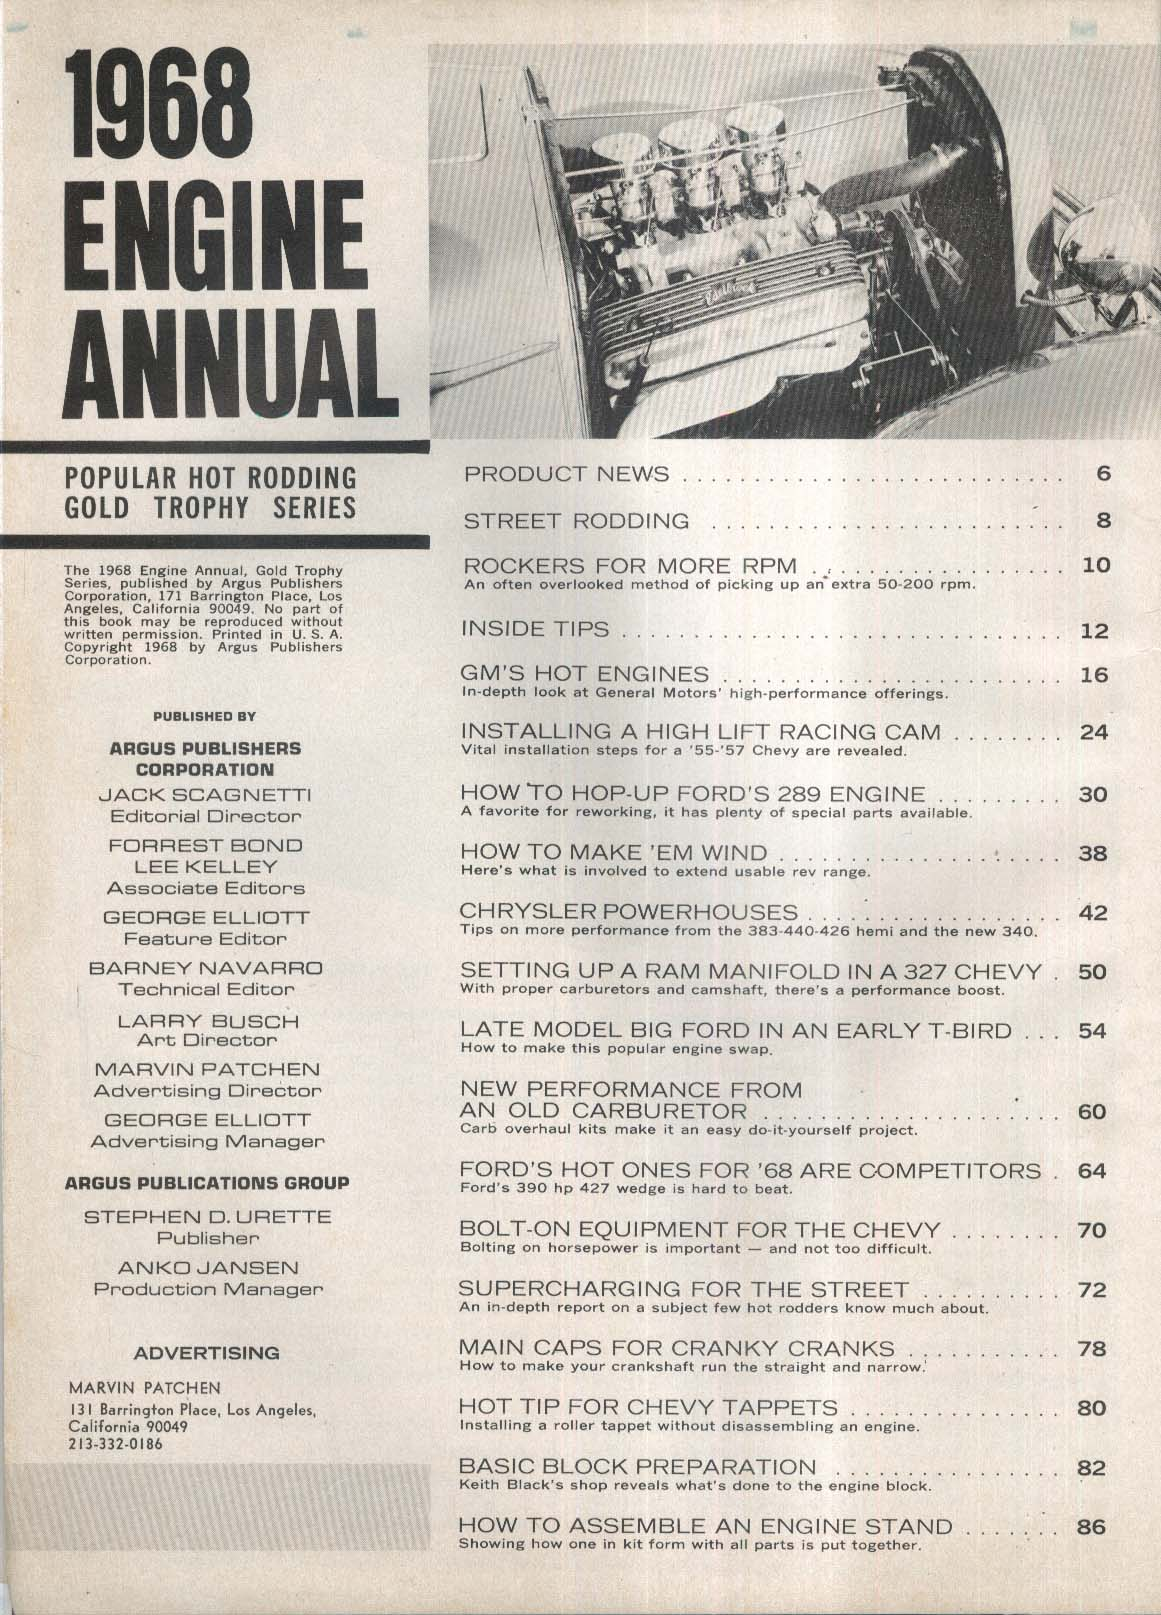 ENGINE ANNUAL 1968 Ford 289 Chevy 327 Hemi Ram Manifold